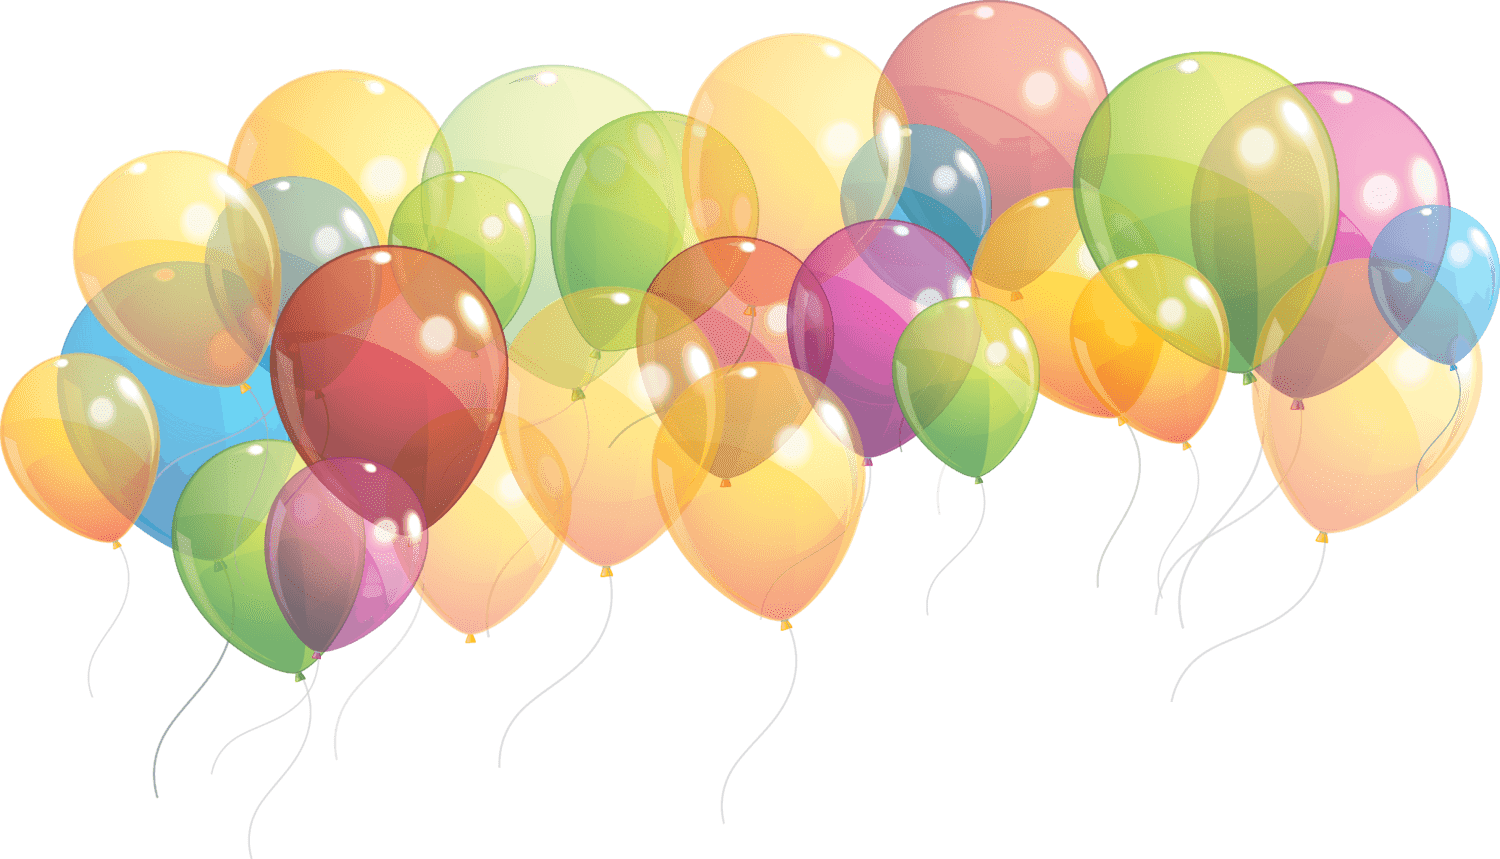 Group of balloons taking. Balloon png transparent background clip art transparent